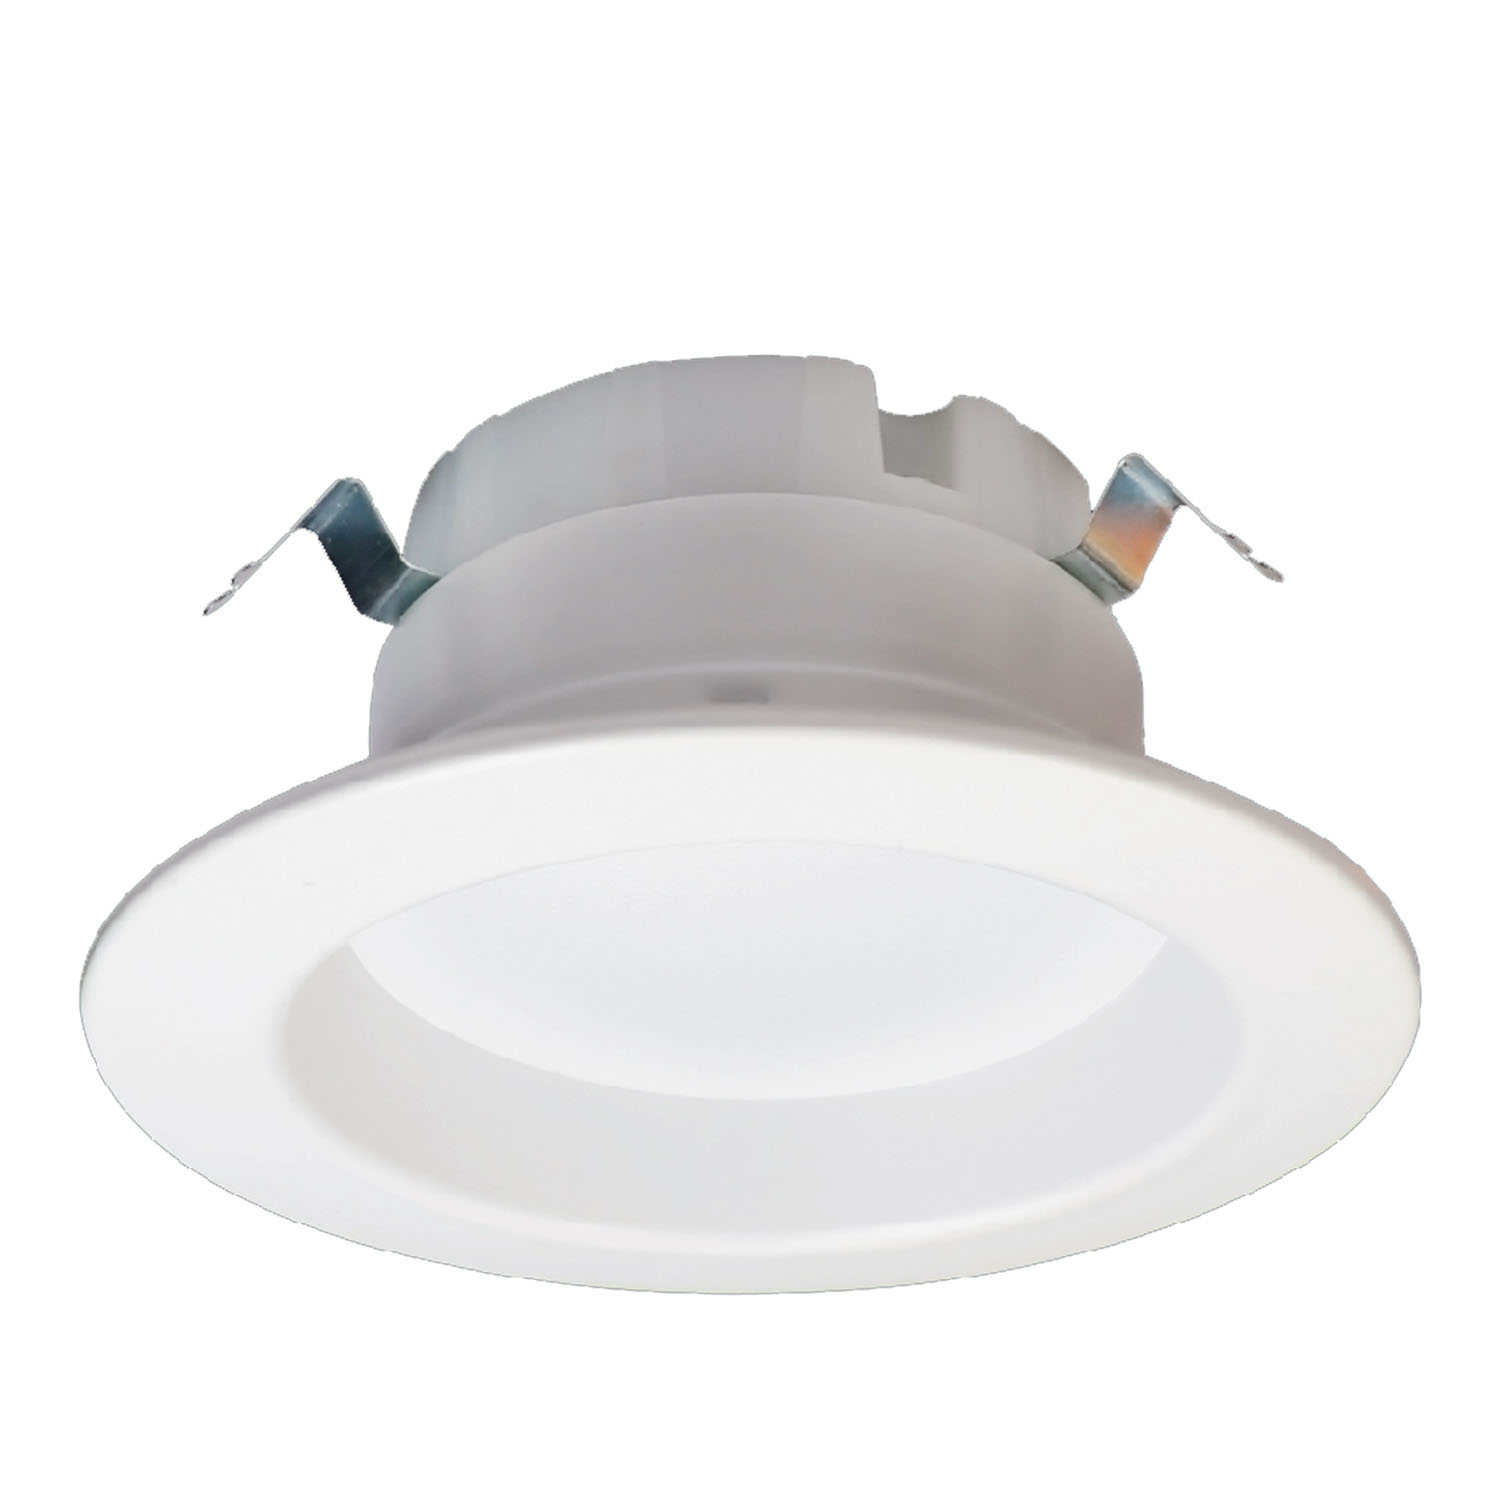 "DL4FR10/940/ECO/LED2 99635 4"" Retrofit Downlight, 10W, 4000K, Dimmable ProLED ECO Series II"